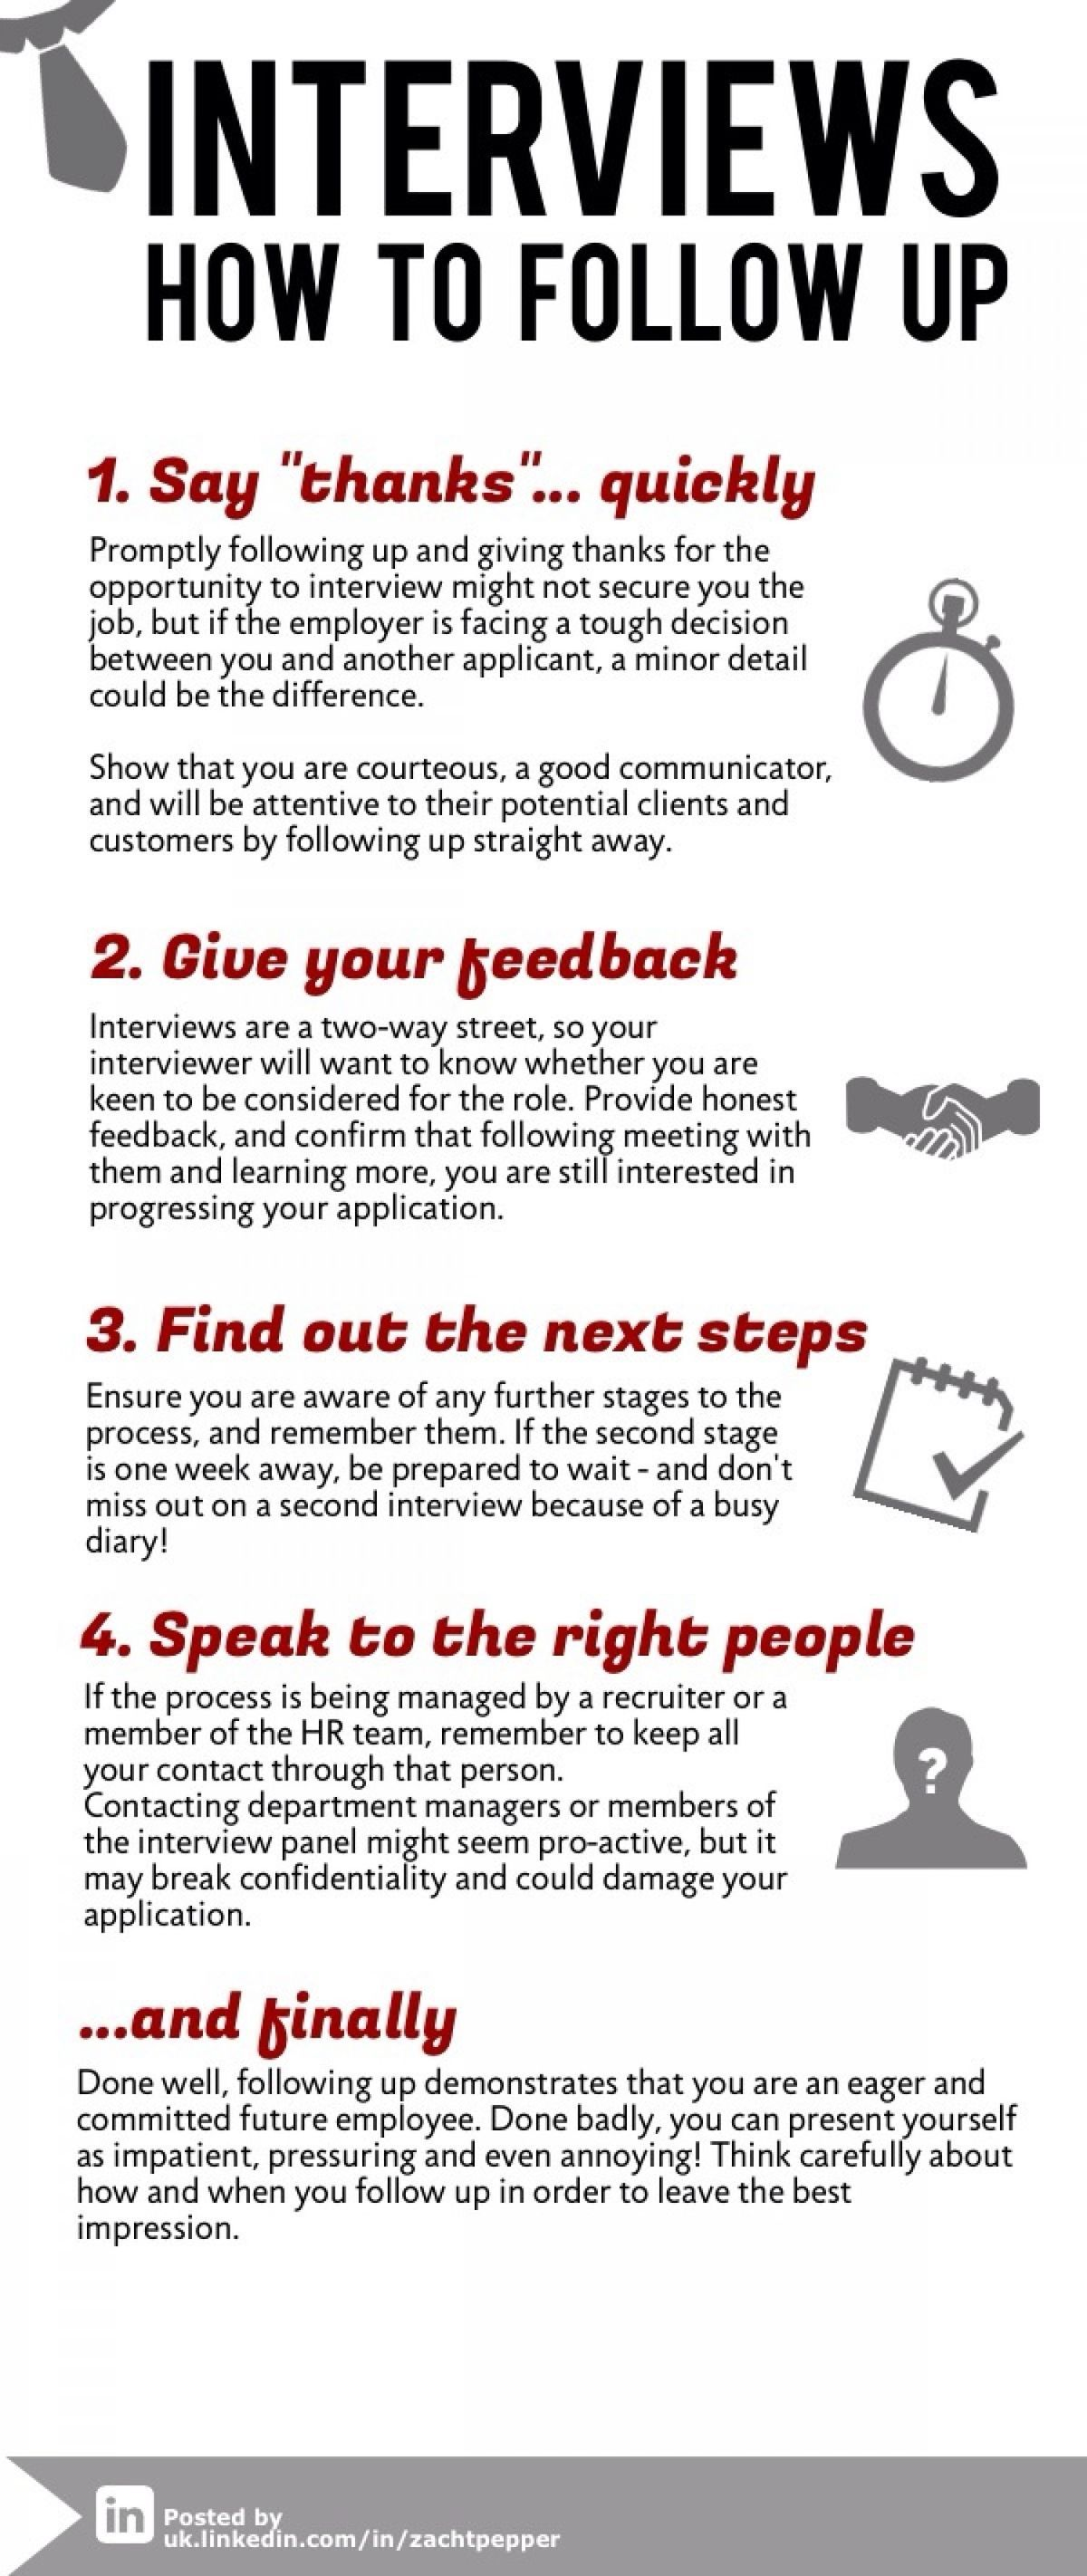 interview tips infographic - Job Interview Techniques Tips